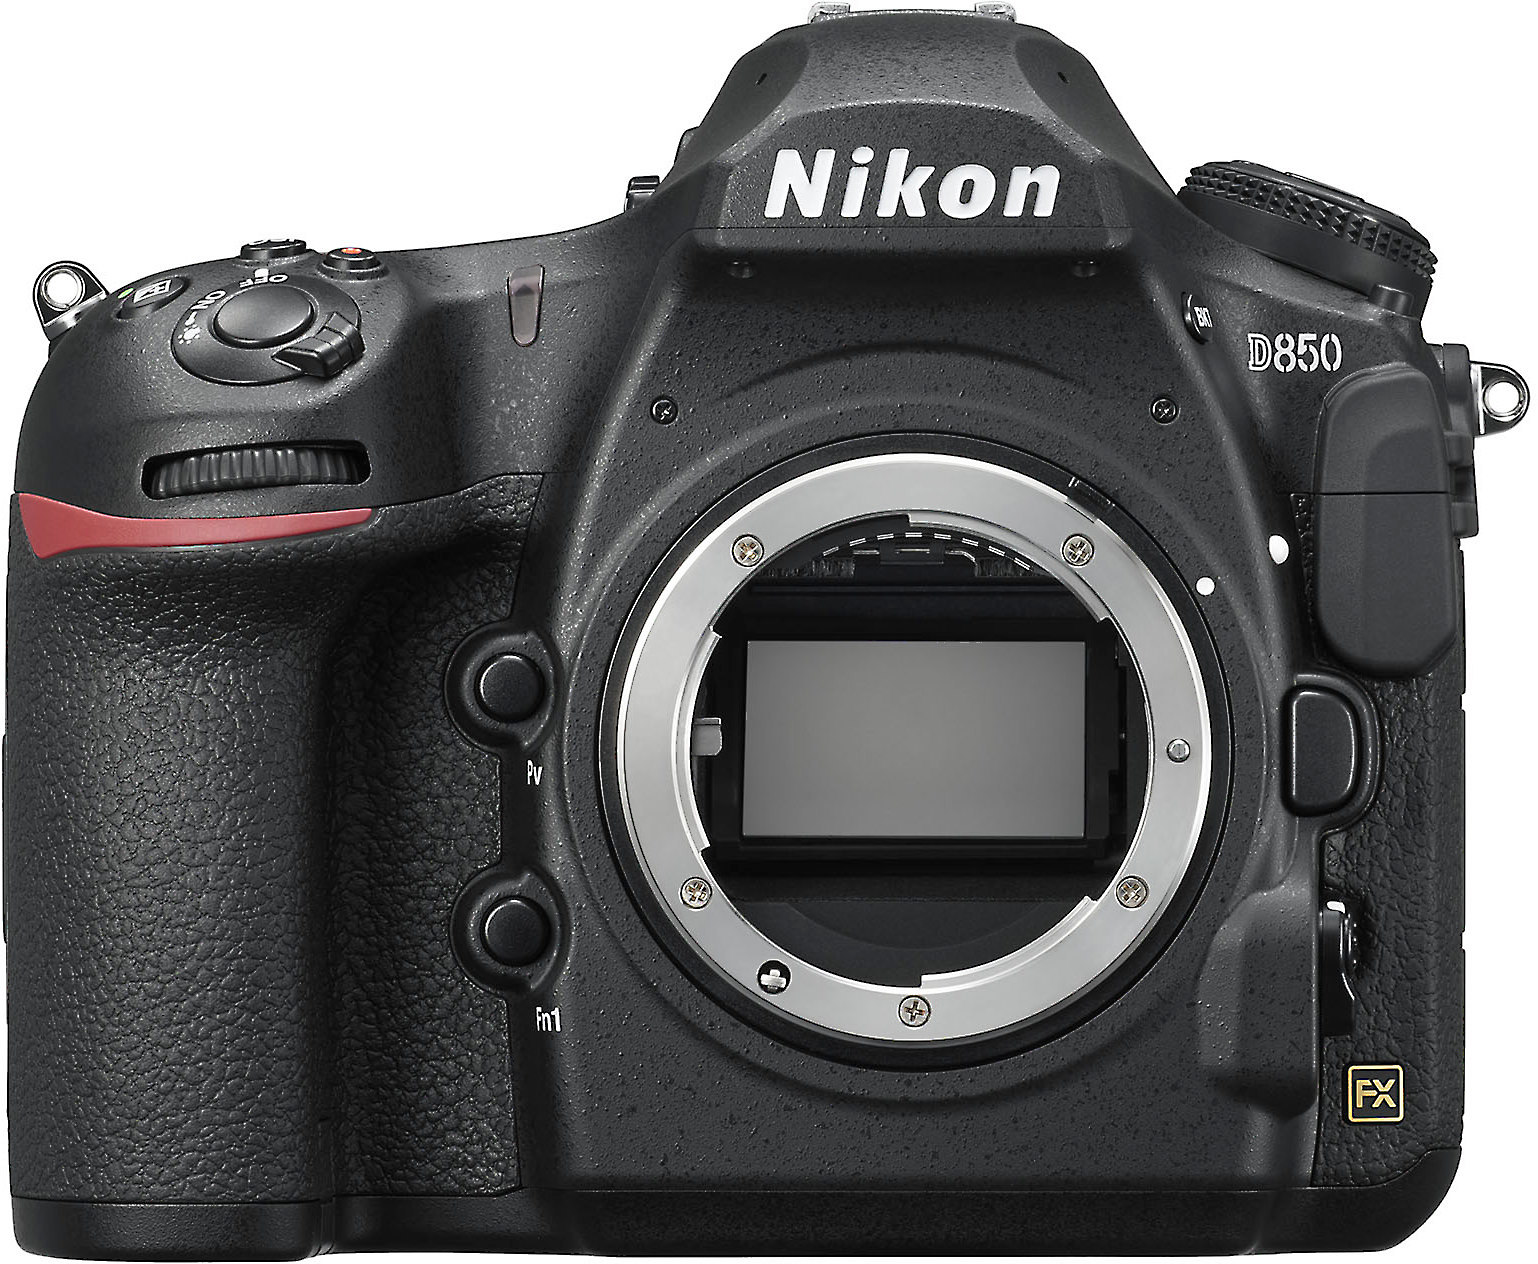 Image result for Nikon D850 IMAHGES